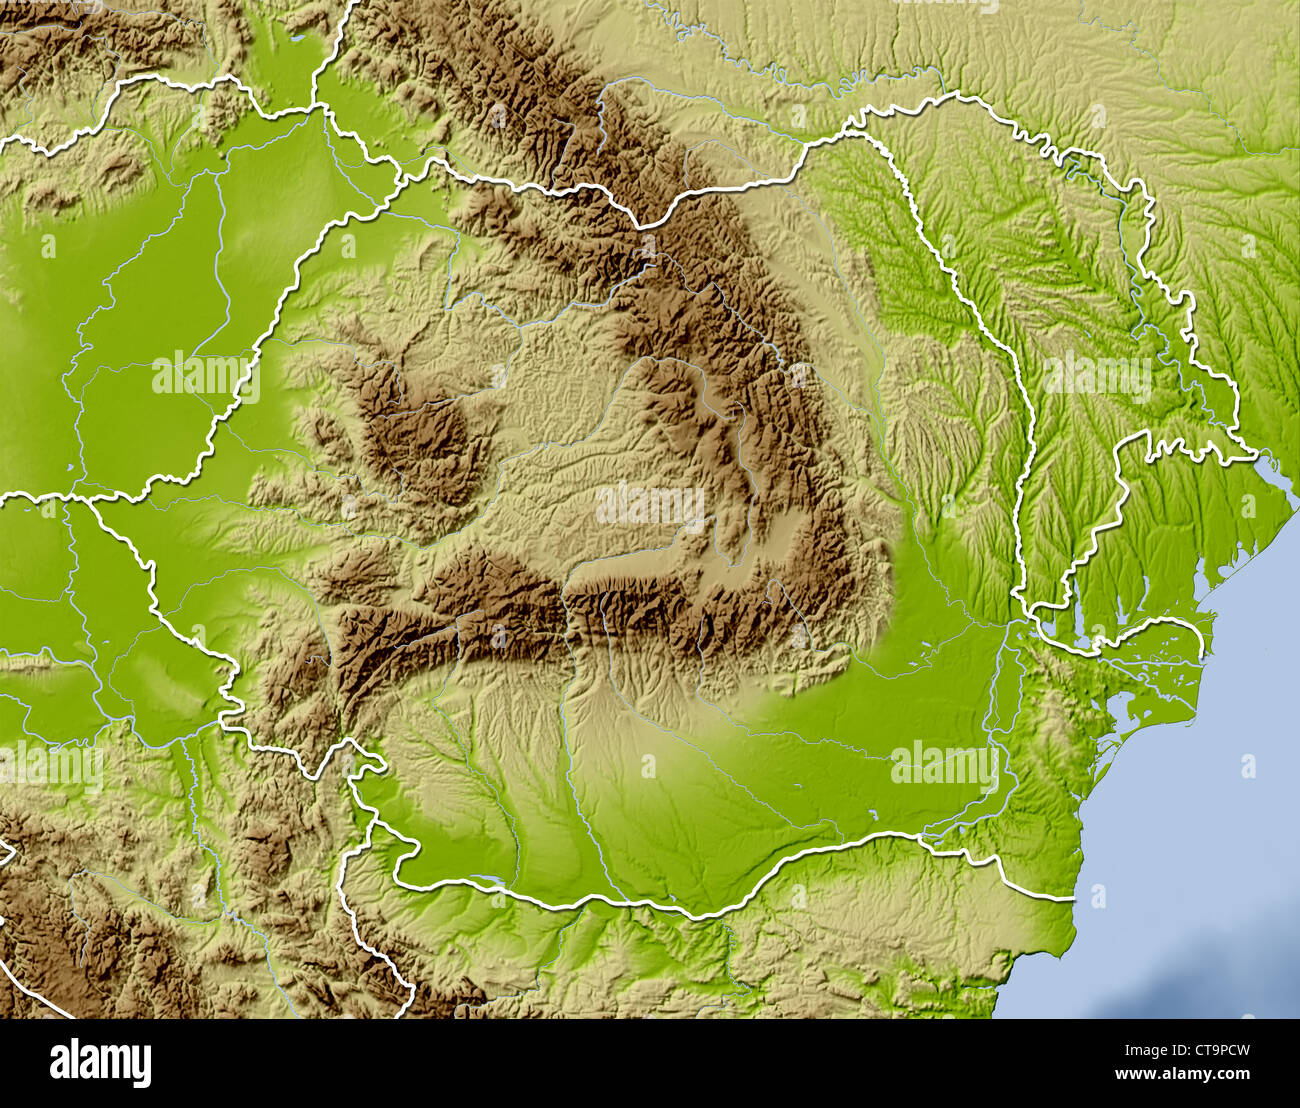 Relief Map Map Of Dc Comics Cities Map Of Jesus Life - Jamaica shaded relief map 1968